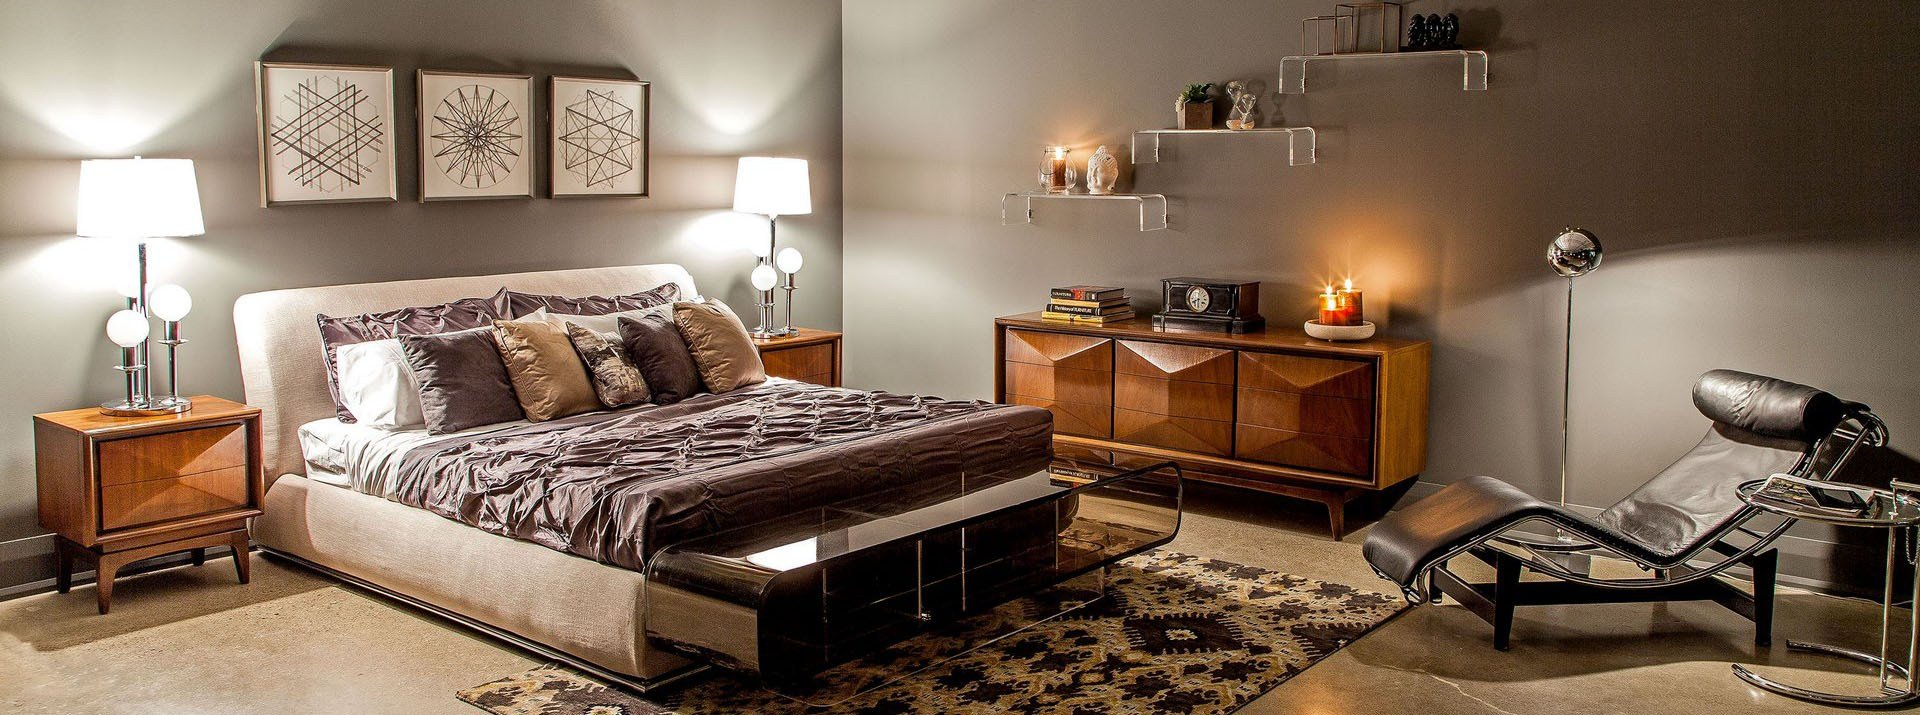 Best Fine Furniture Rentals For Movie Sets Tv Shows With Pictures